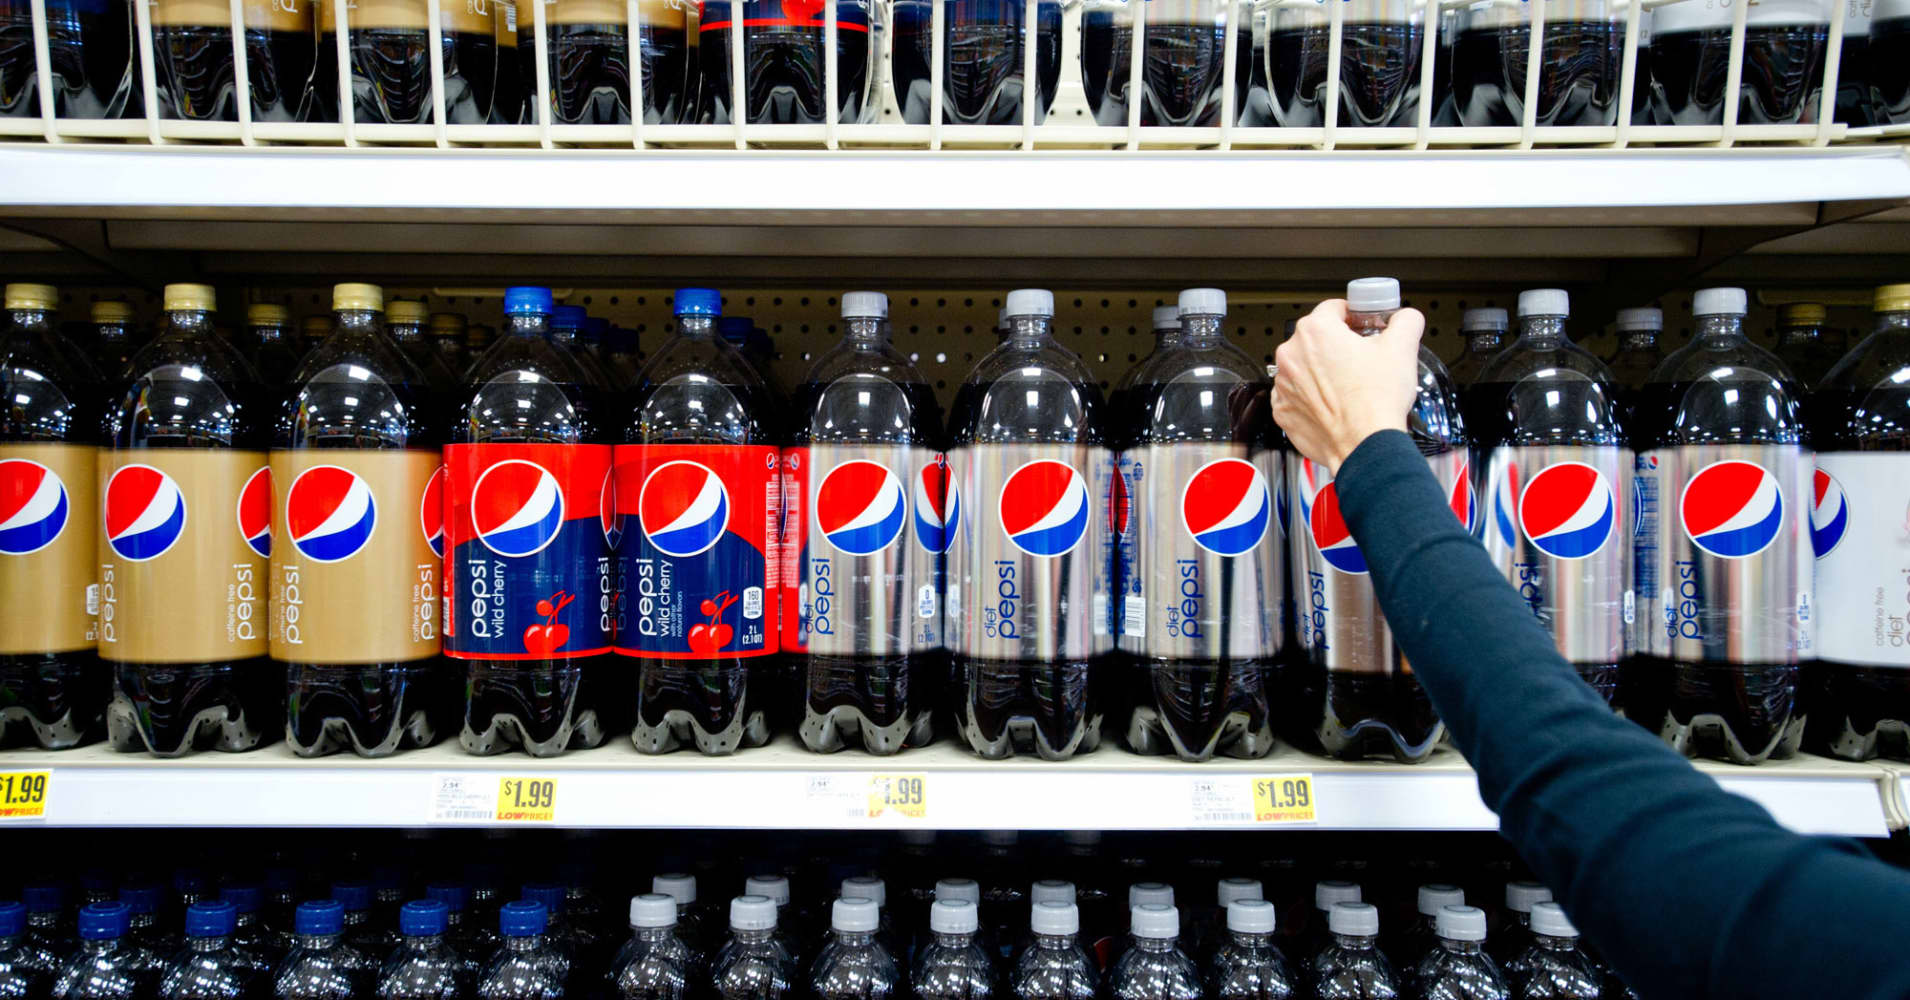 PepsiCo shares rise after earnings beat